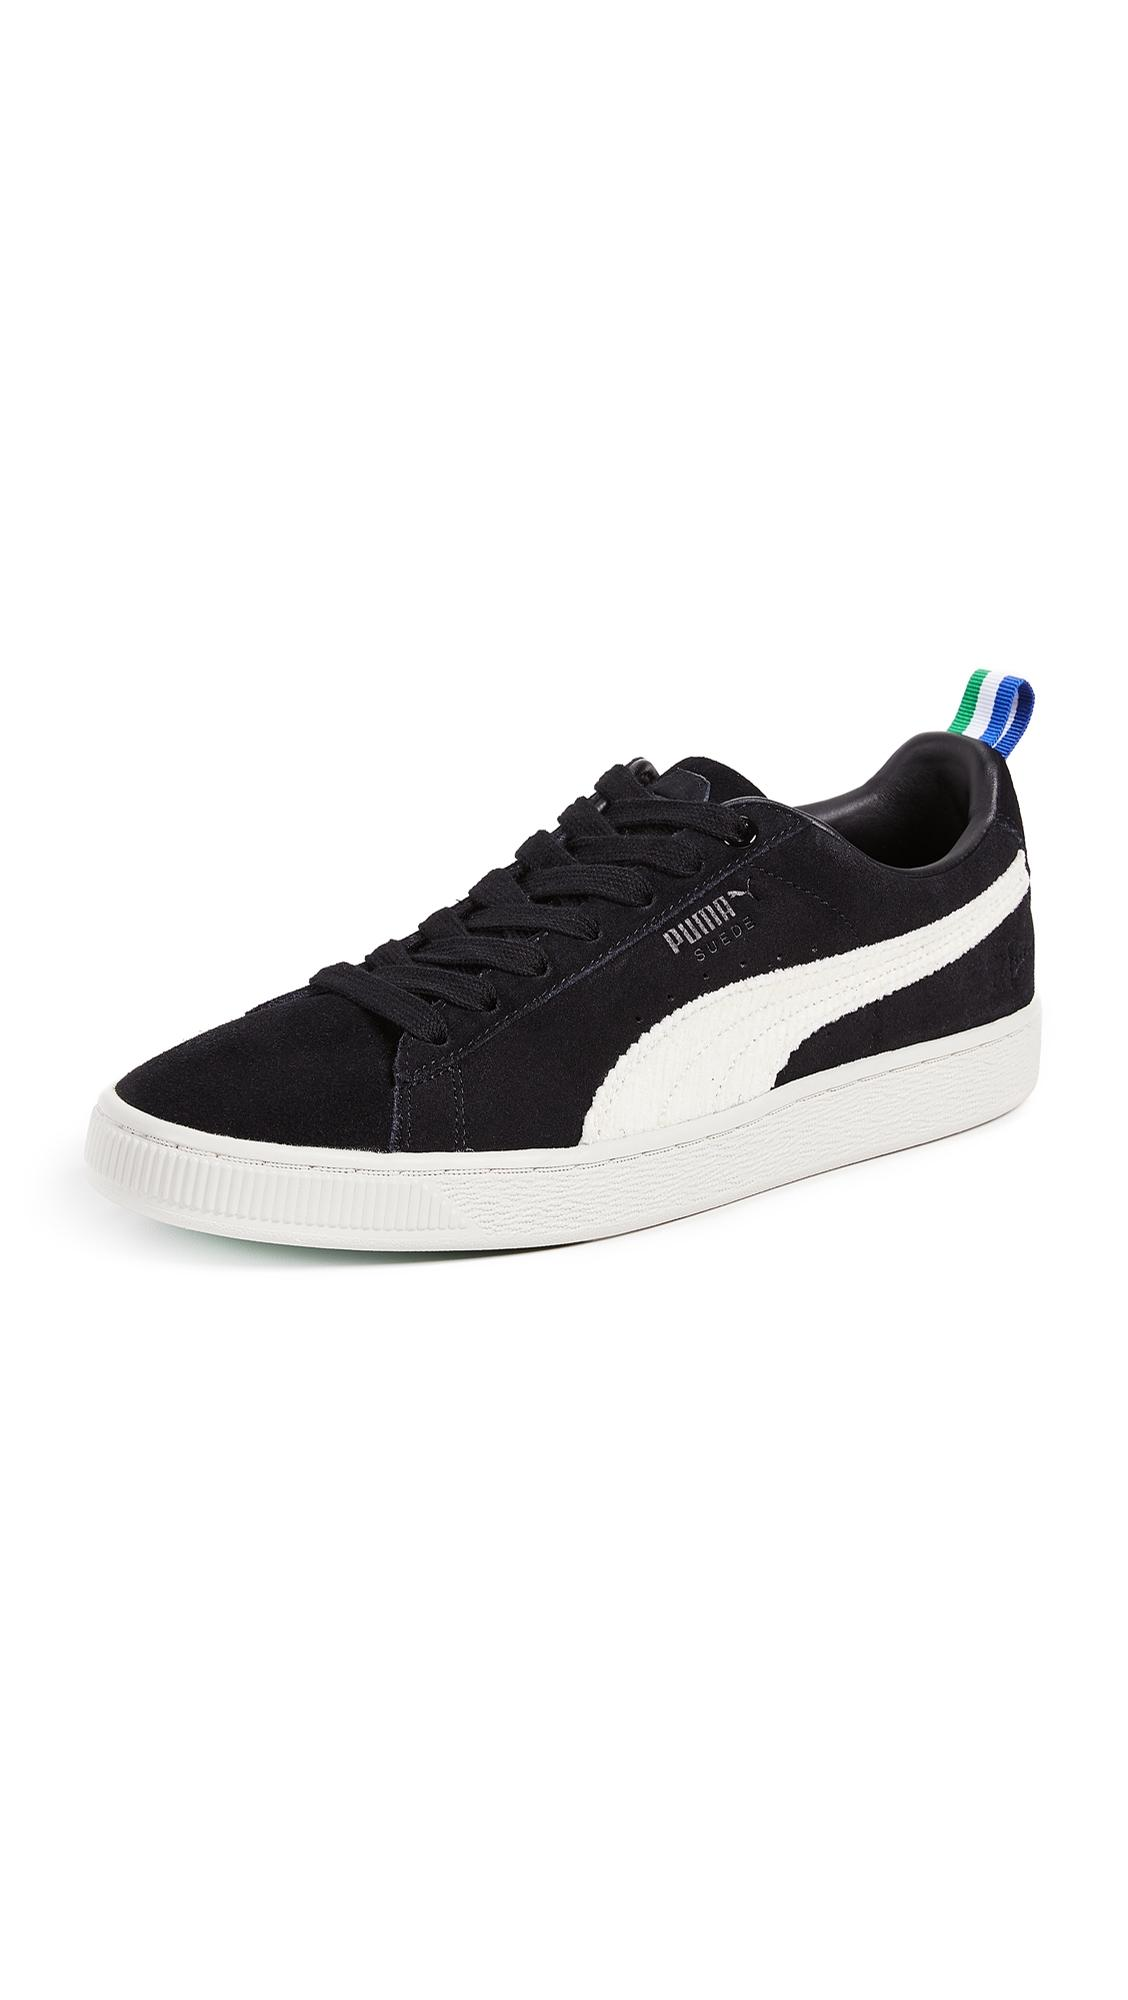 Puma Sean Suede In Blackwhisper Big White Sneakers LqzVpUMSG